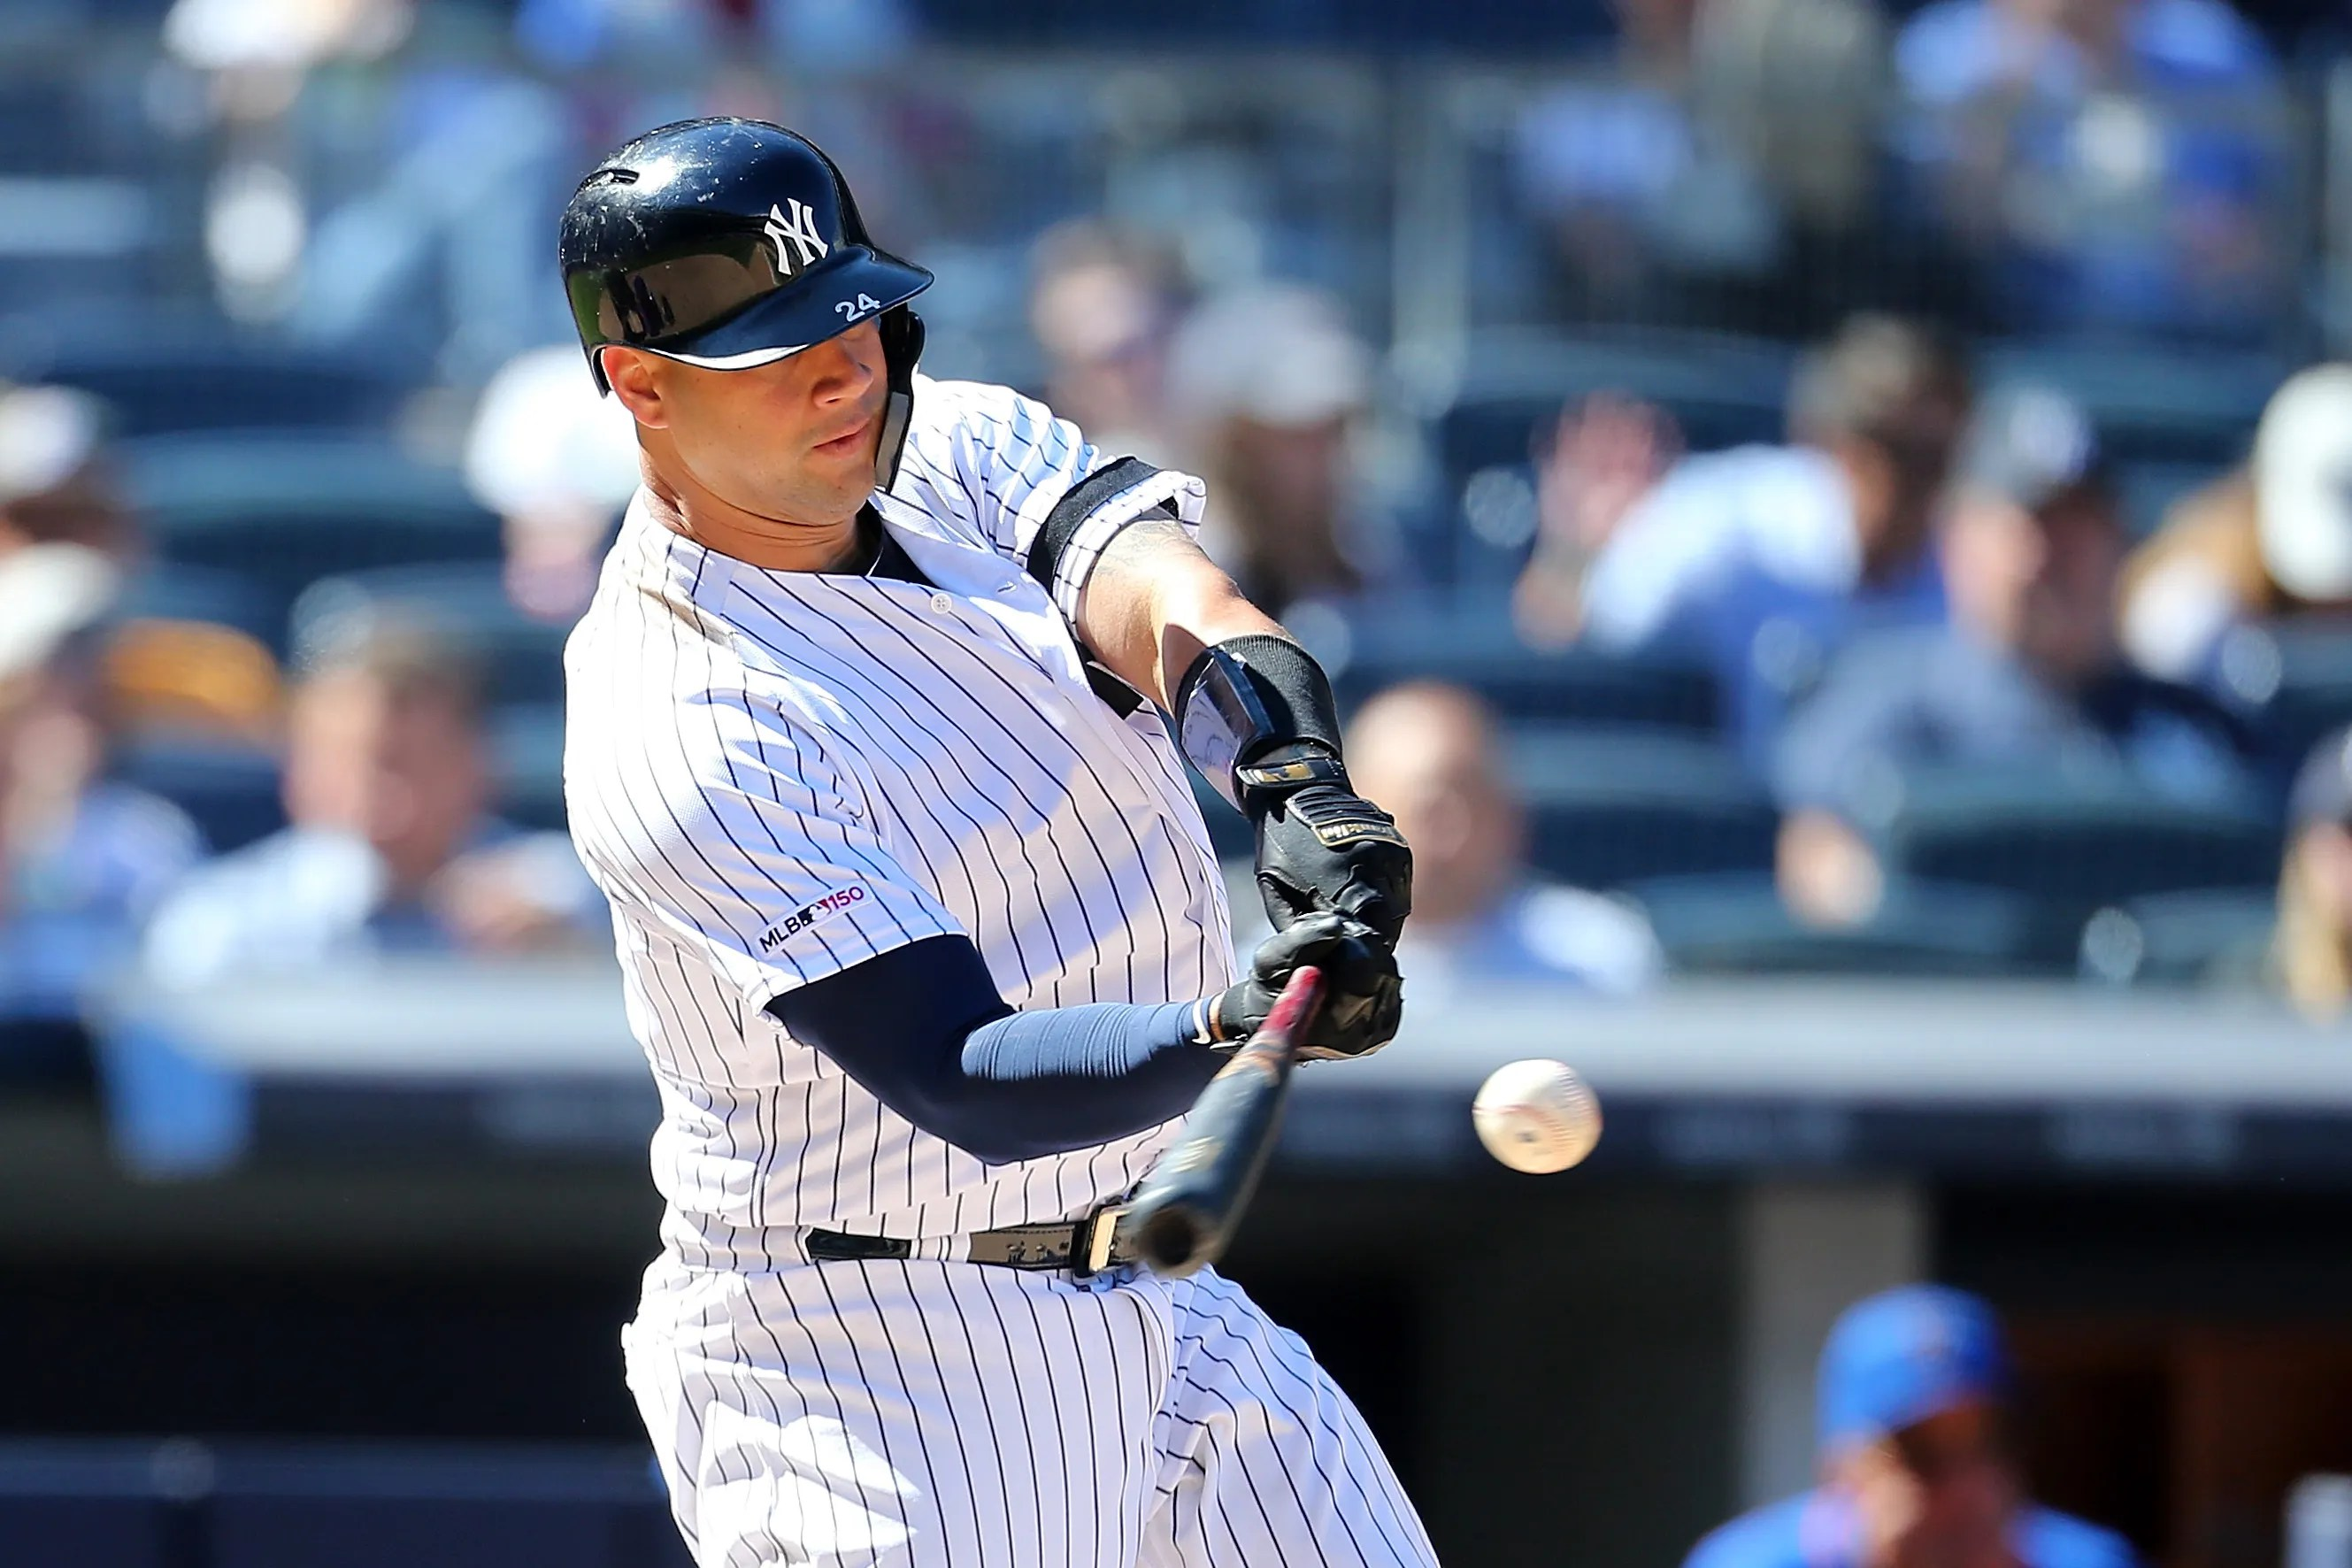 New York Yankees 2020 Schedule Released Here Are The